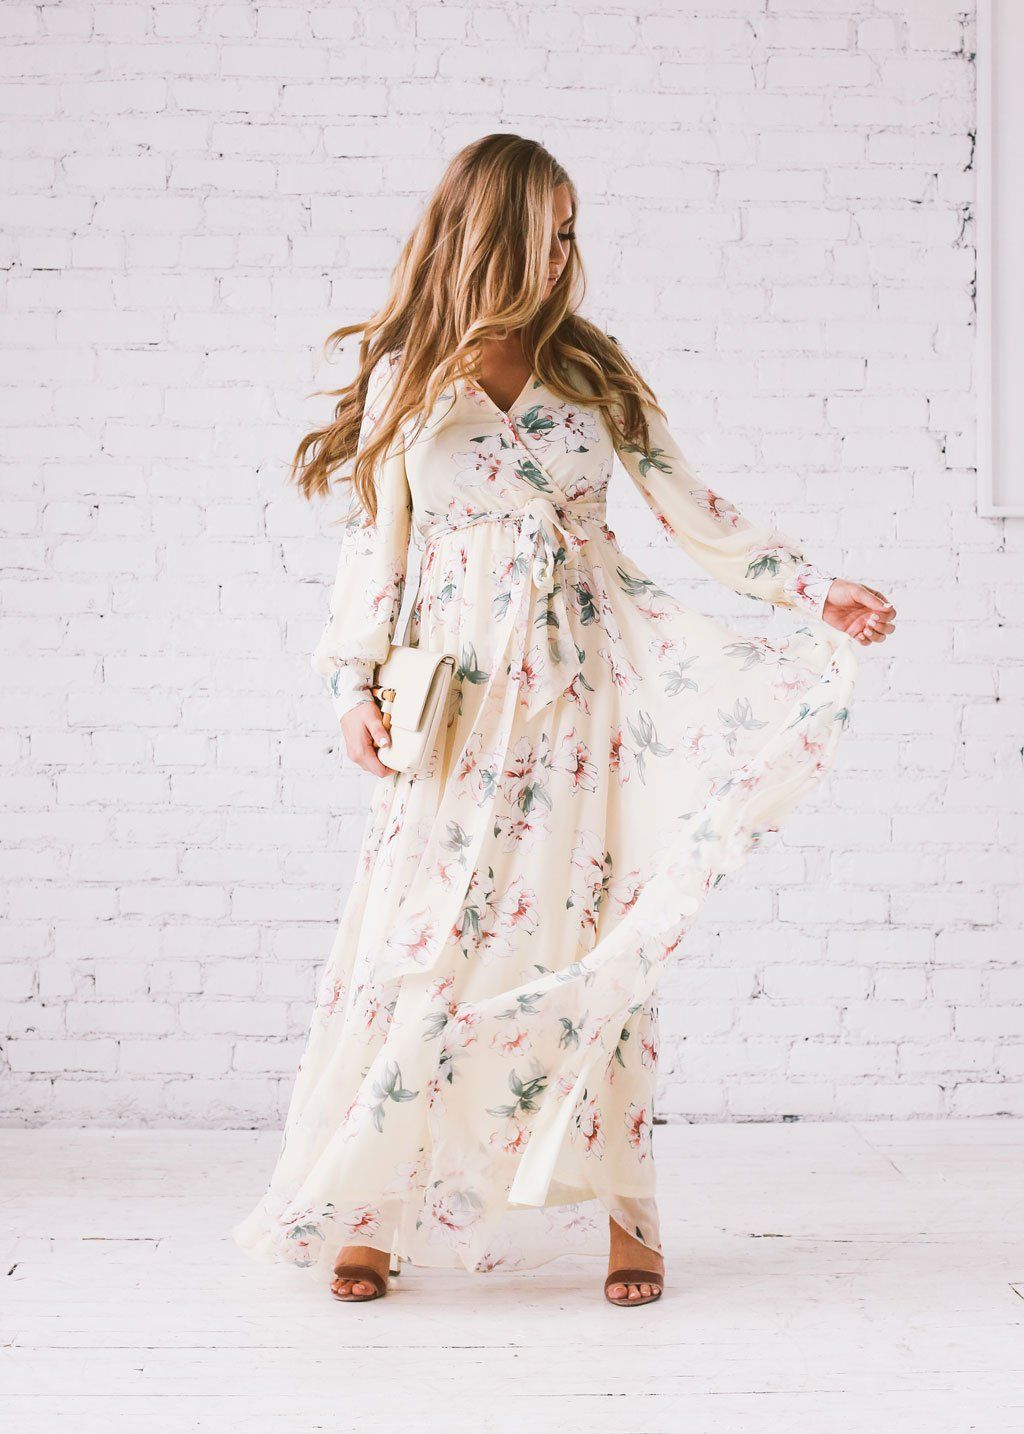 Part Of A Special Collection Of Incredible Dresses By Jessakaeoverflowing With Soft Femininity This Ethereal Gown Is Dresses Ethereal Gown Chiffon Maxi Dress [ 1434 x 1024 Pixel ]